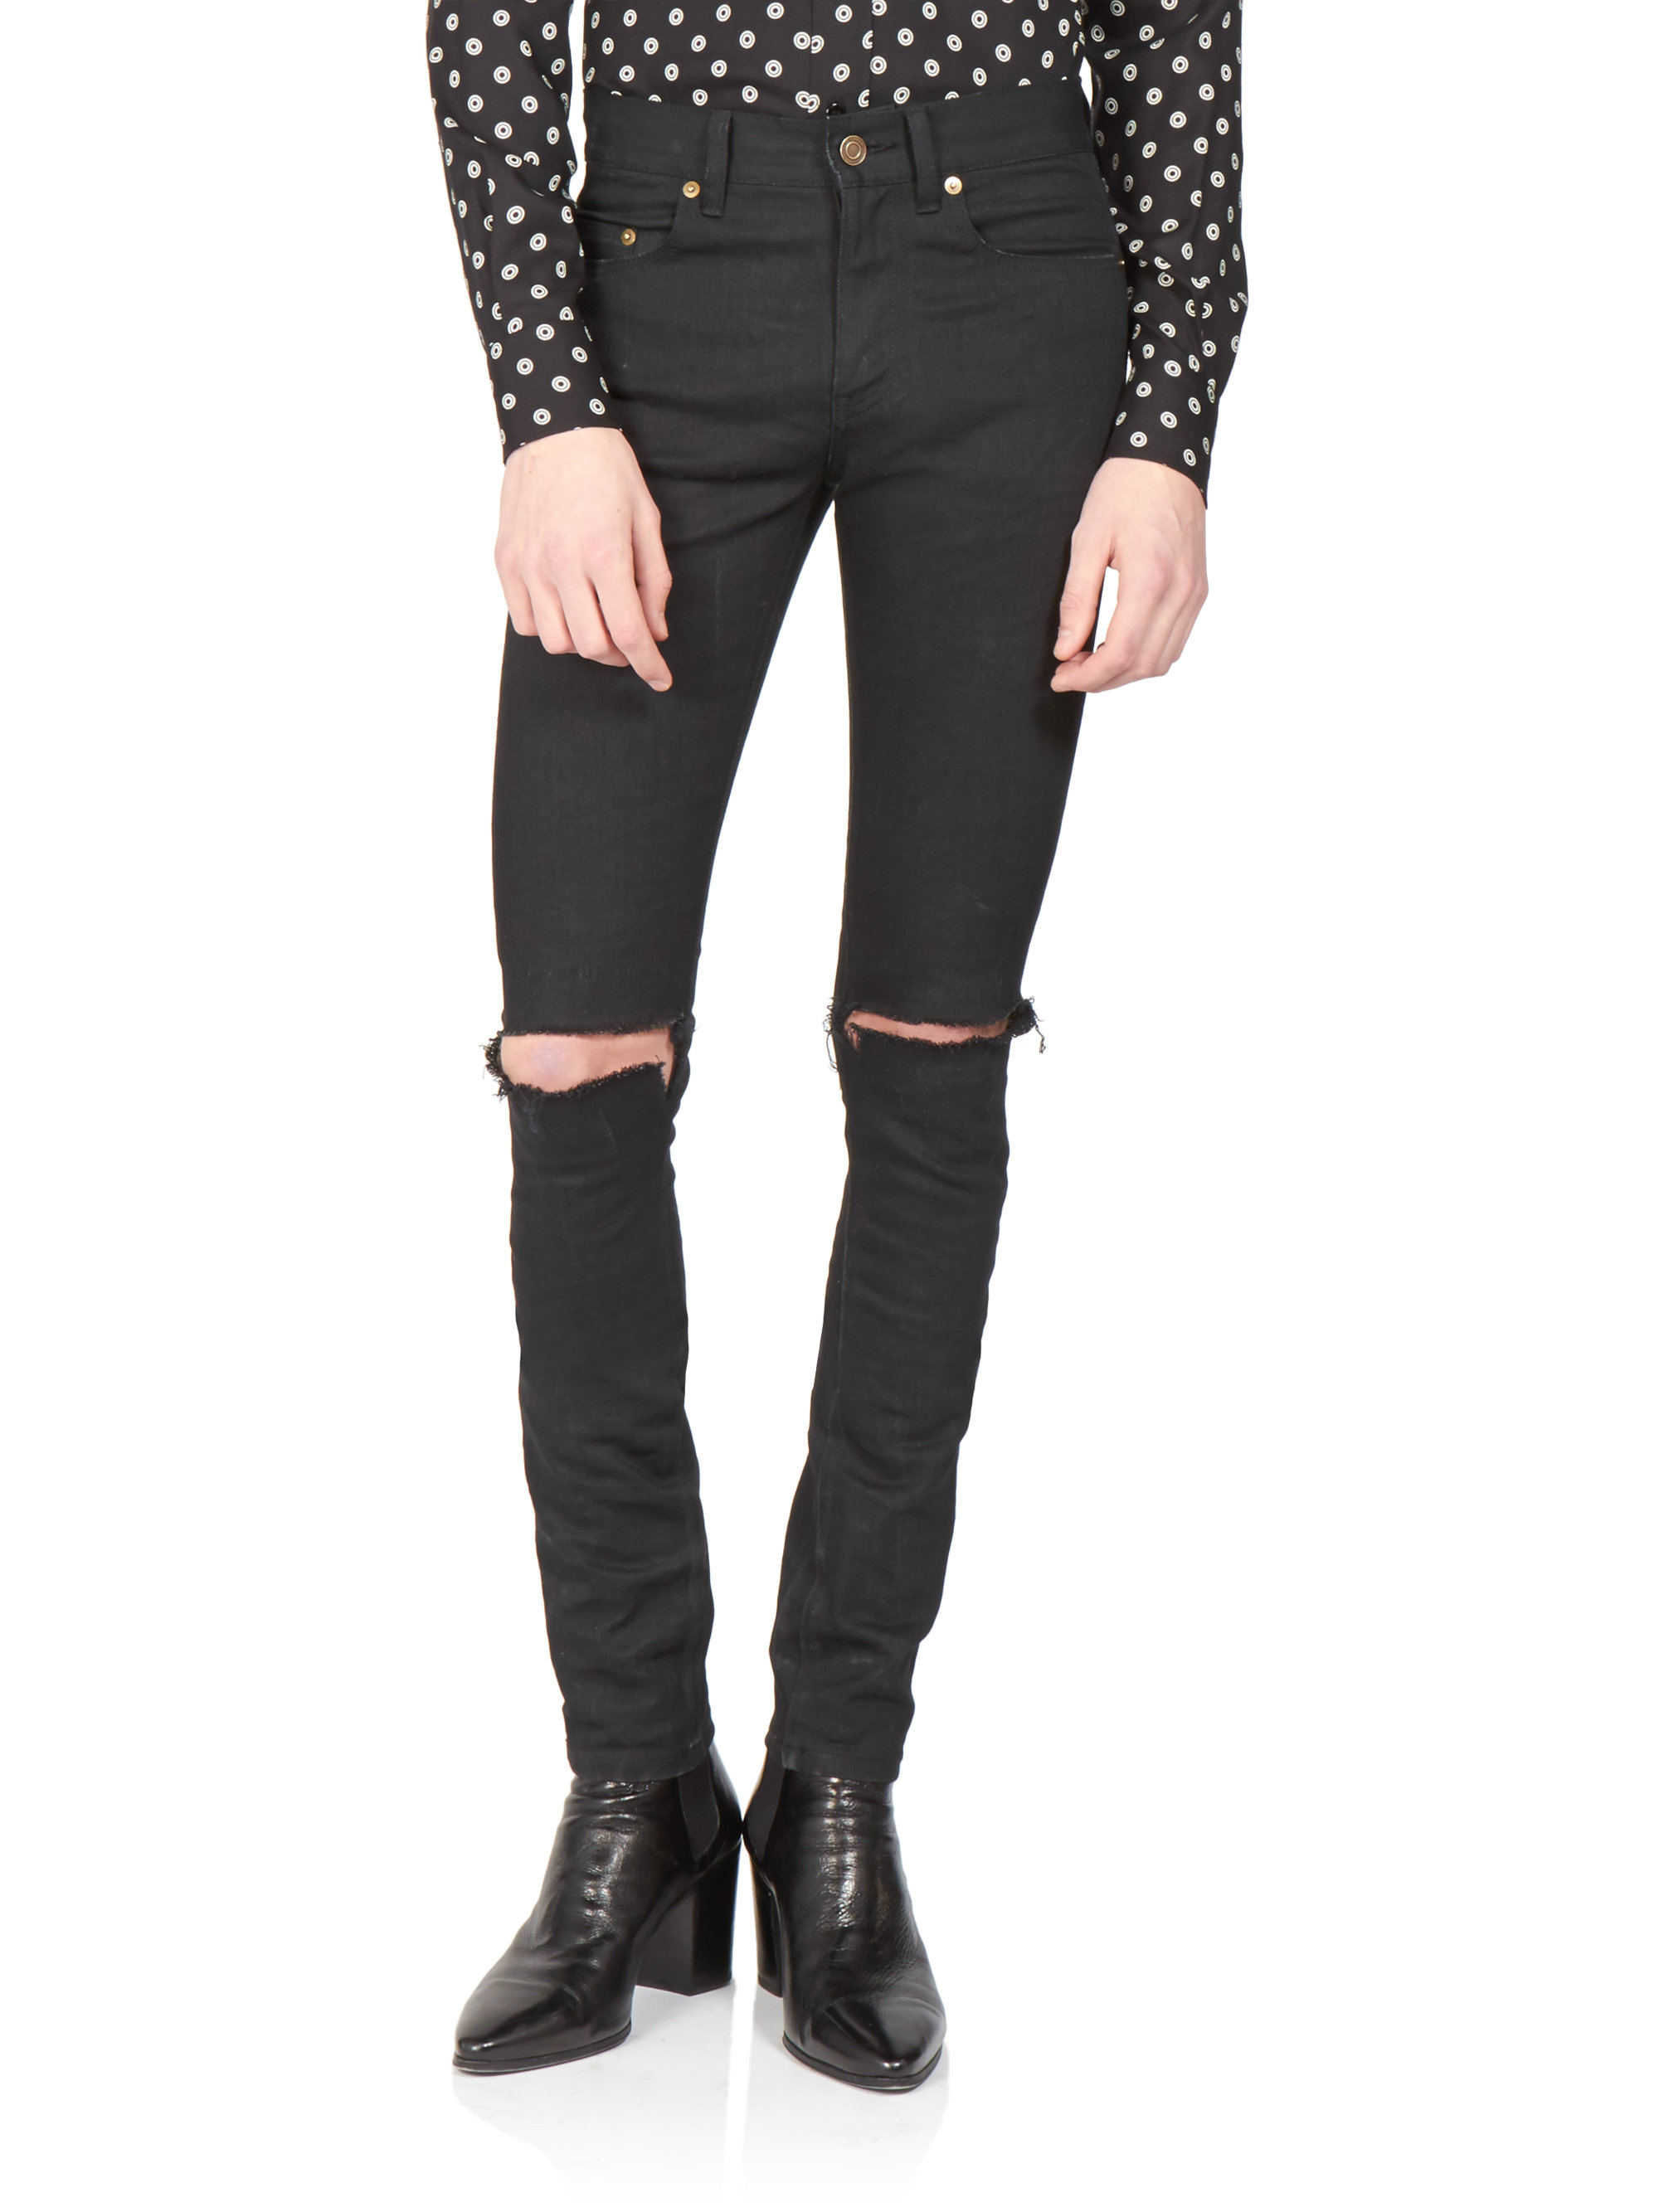 9090fa9a611 Saint Laurent Skinny Distressed Jeans in Black for Men - Lyst